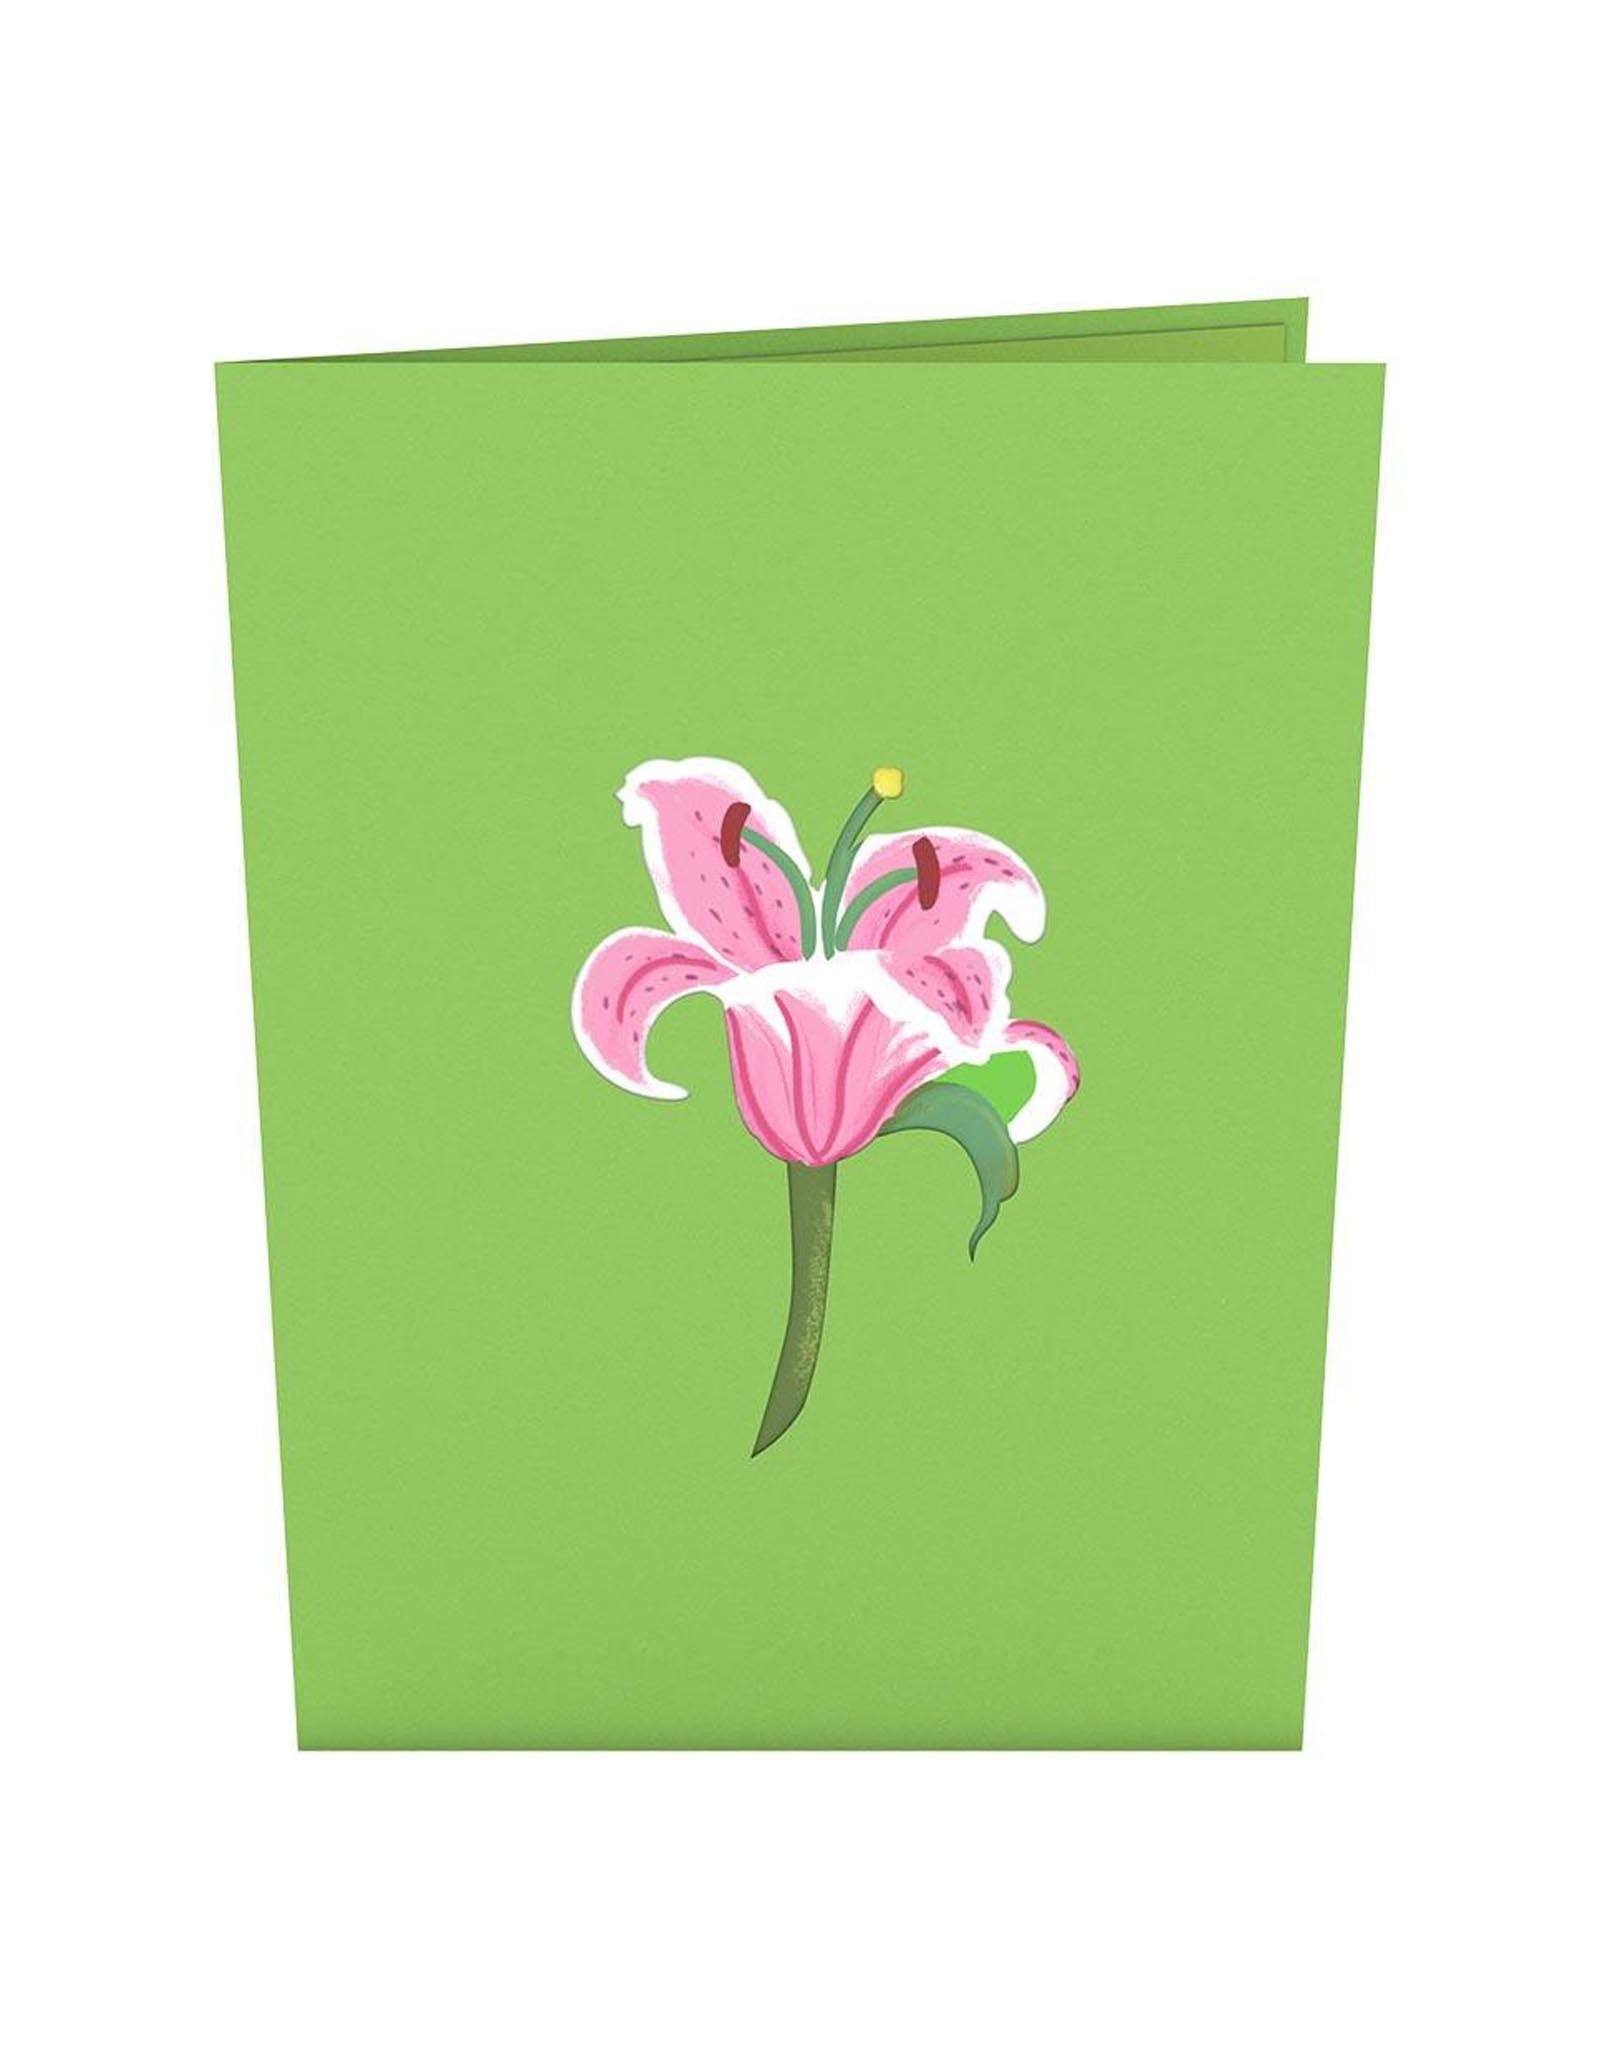 Lily Bloom 3D Popup Card